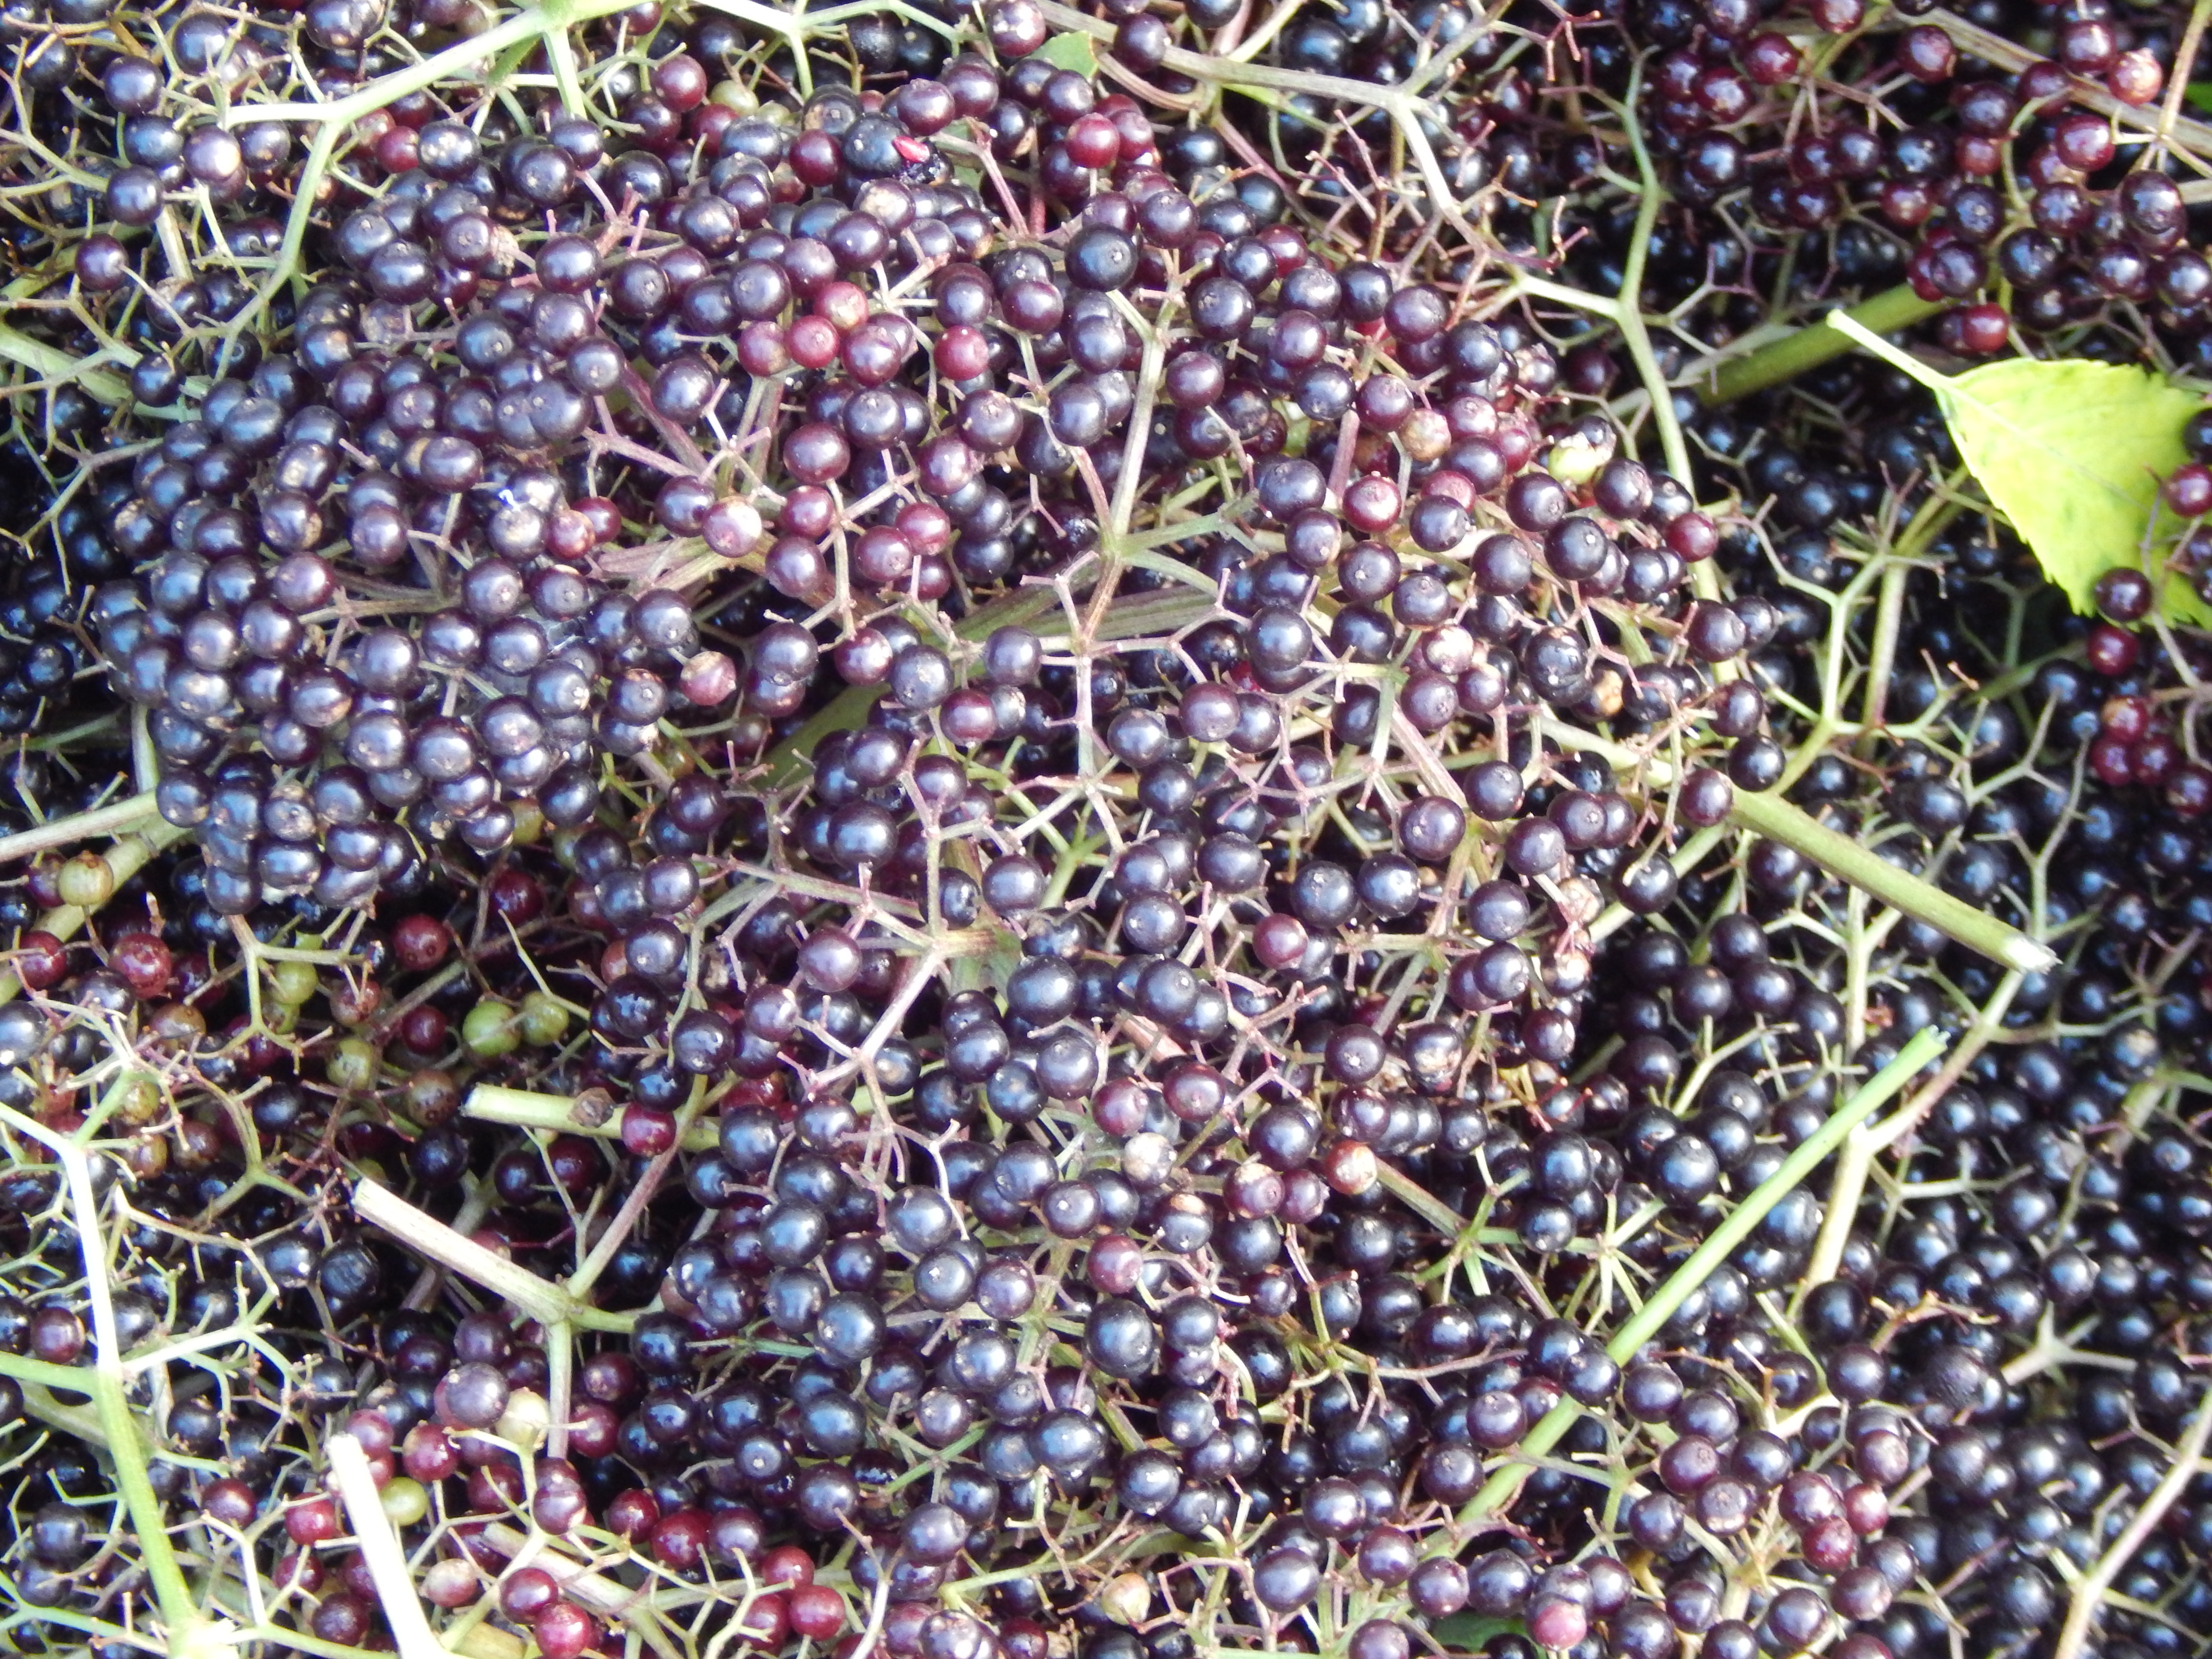 The research on elderberry syrup